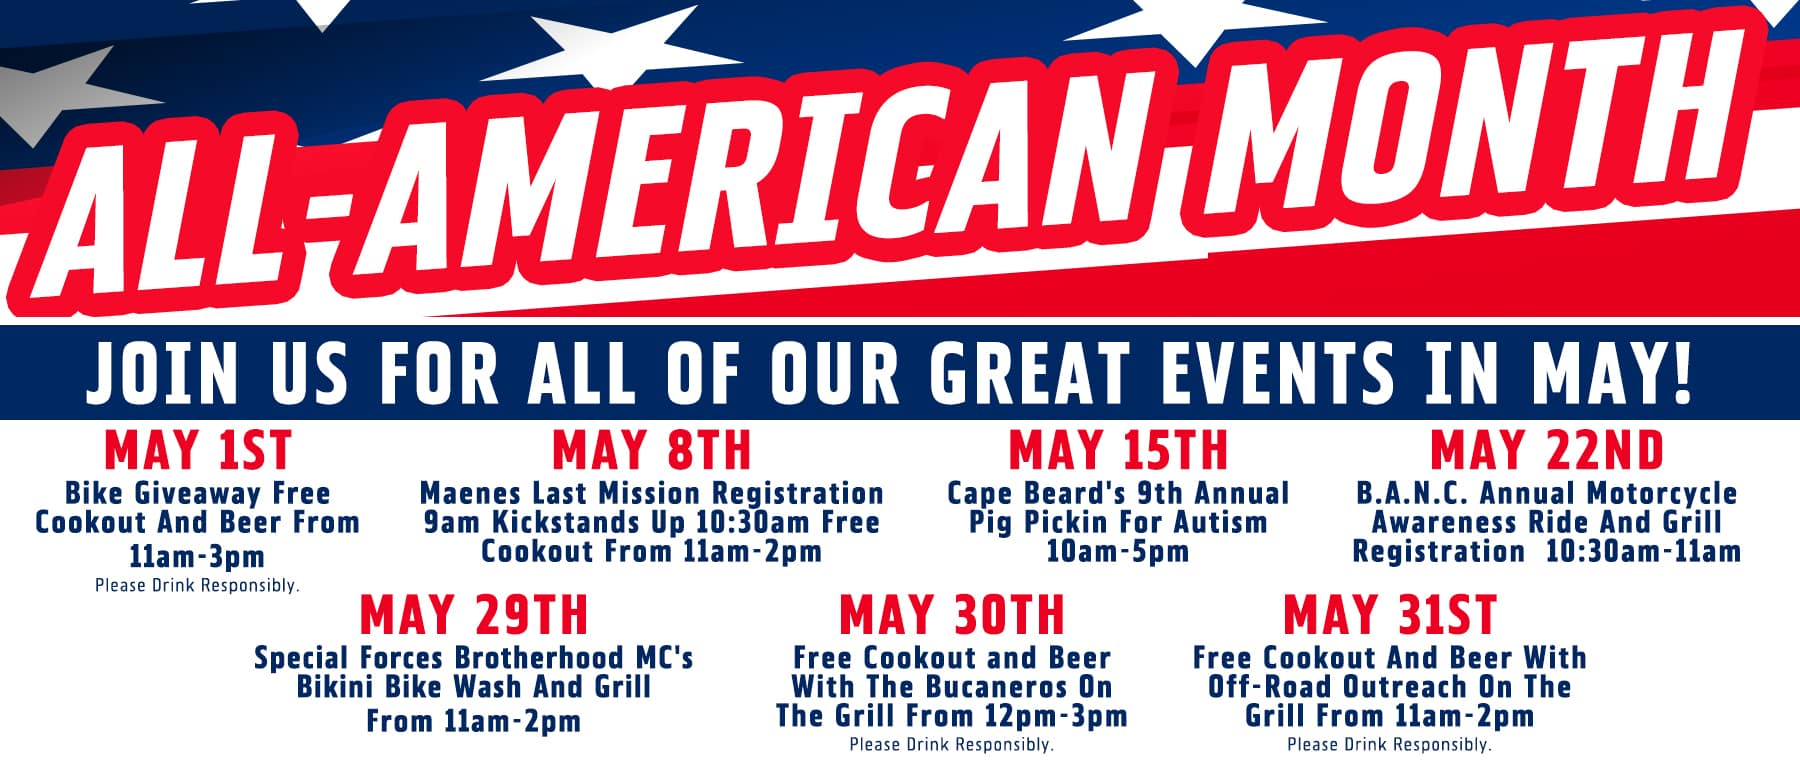 ALL-AMERICAN MONTH EVENTS